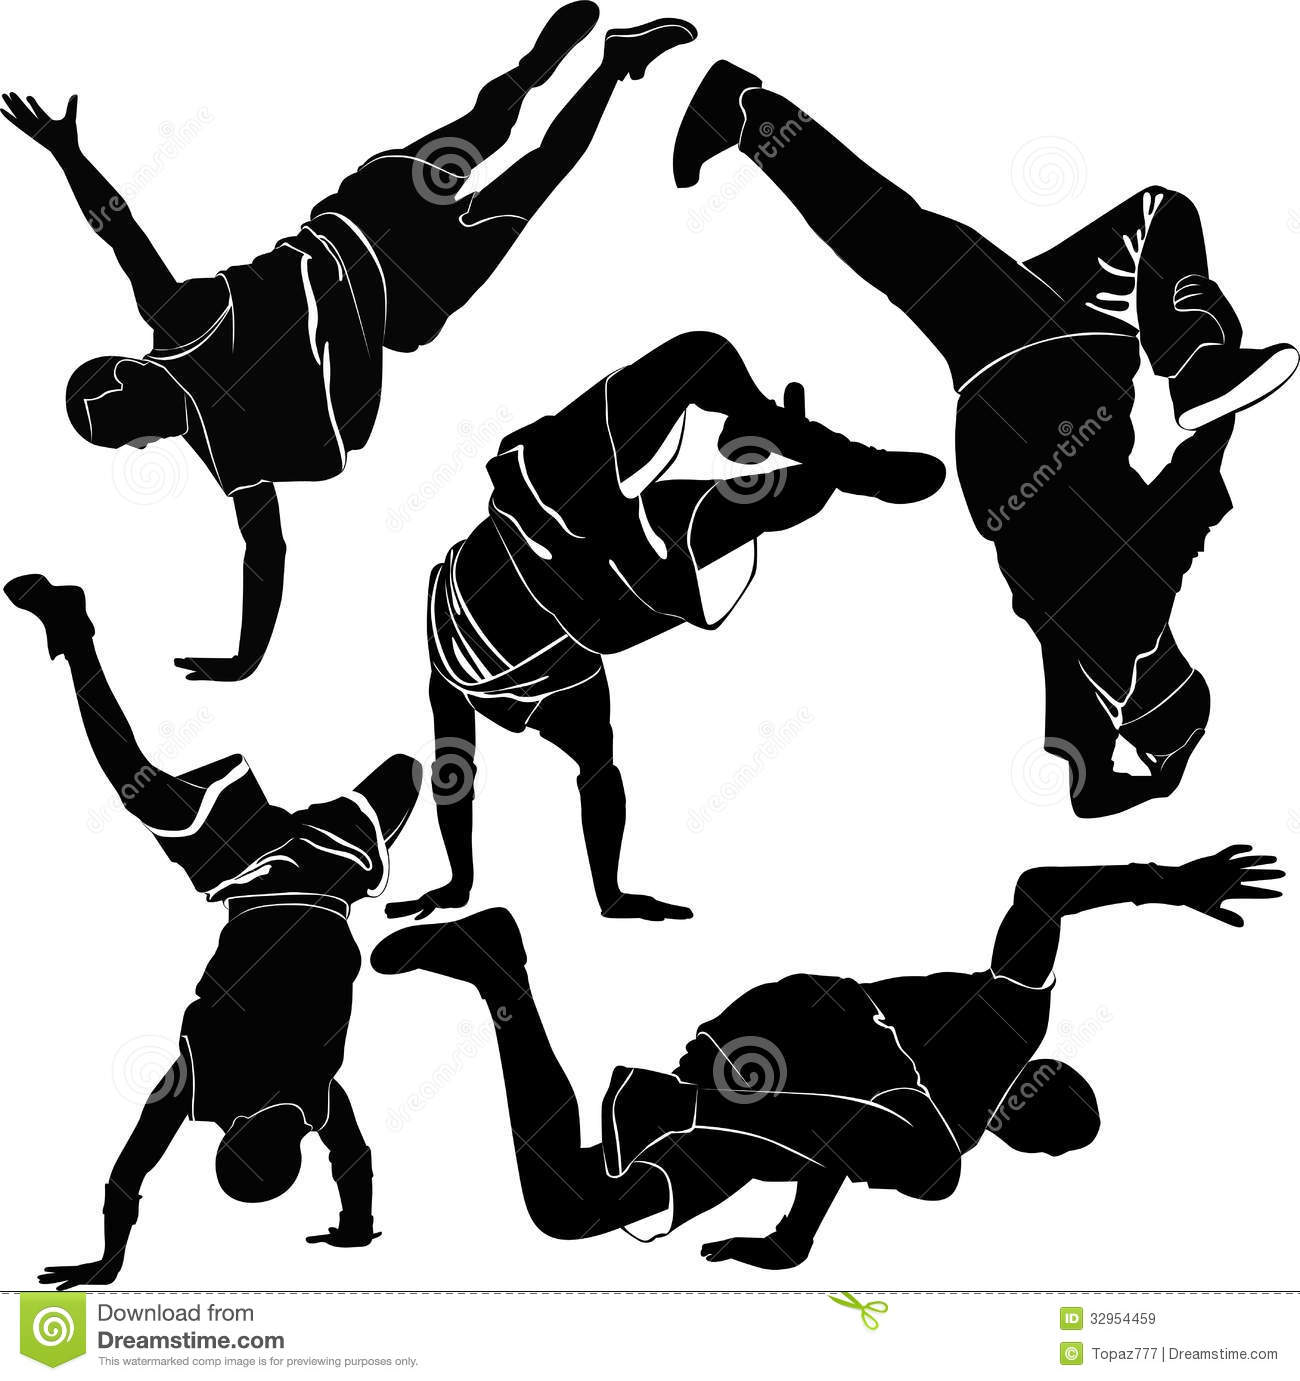 How to learn to break dance online on Vimeo